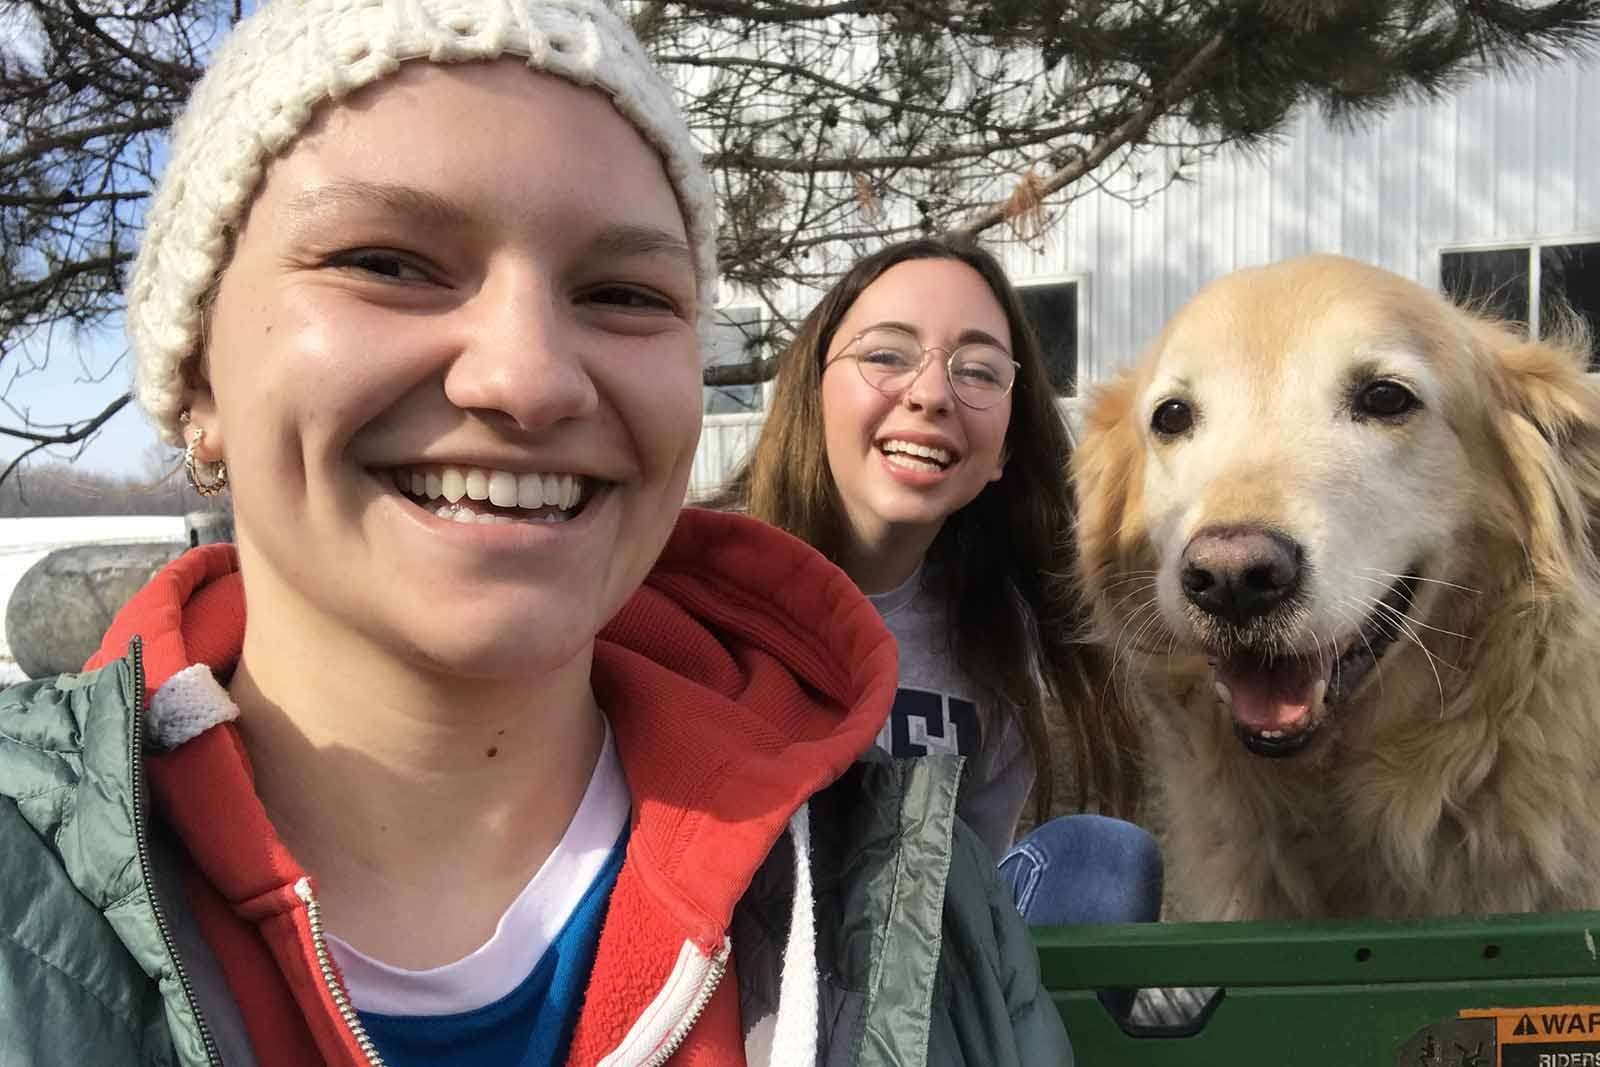 Greta Van Loon '22 (front) and her American Conversations group mate Marlee Baron '22 take a tour of Dave Legvold's farm while visiting to interview him for their podcast.